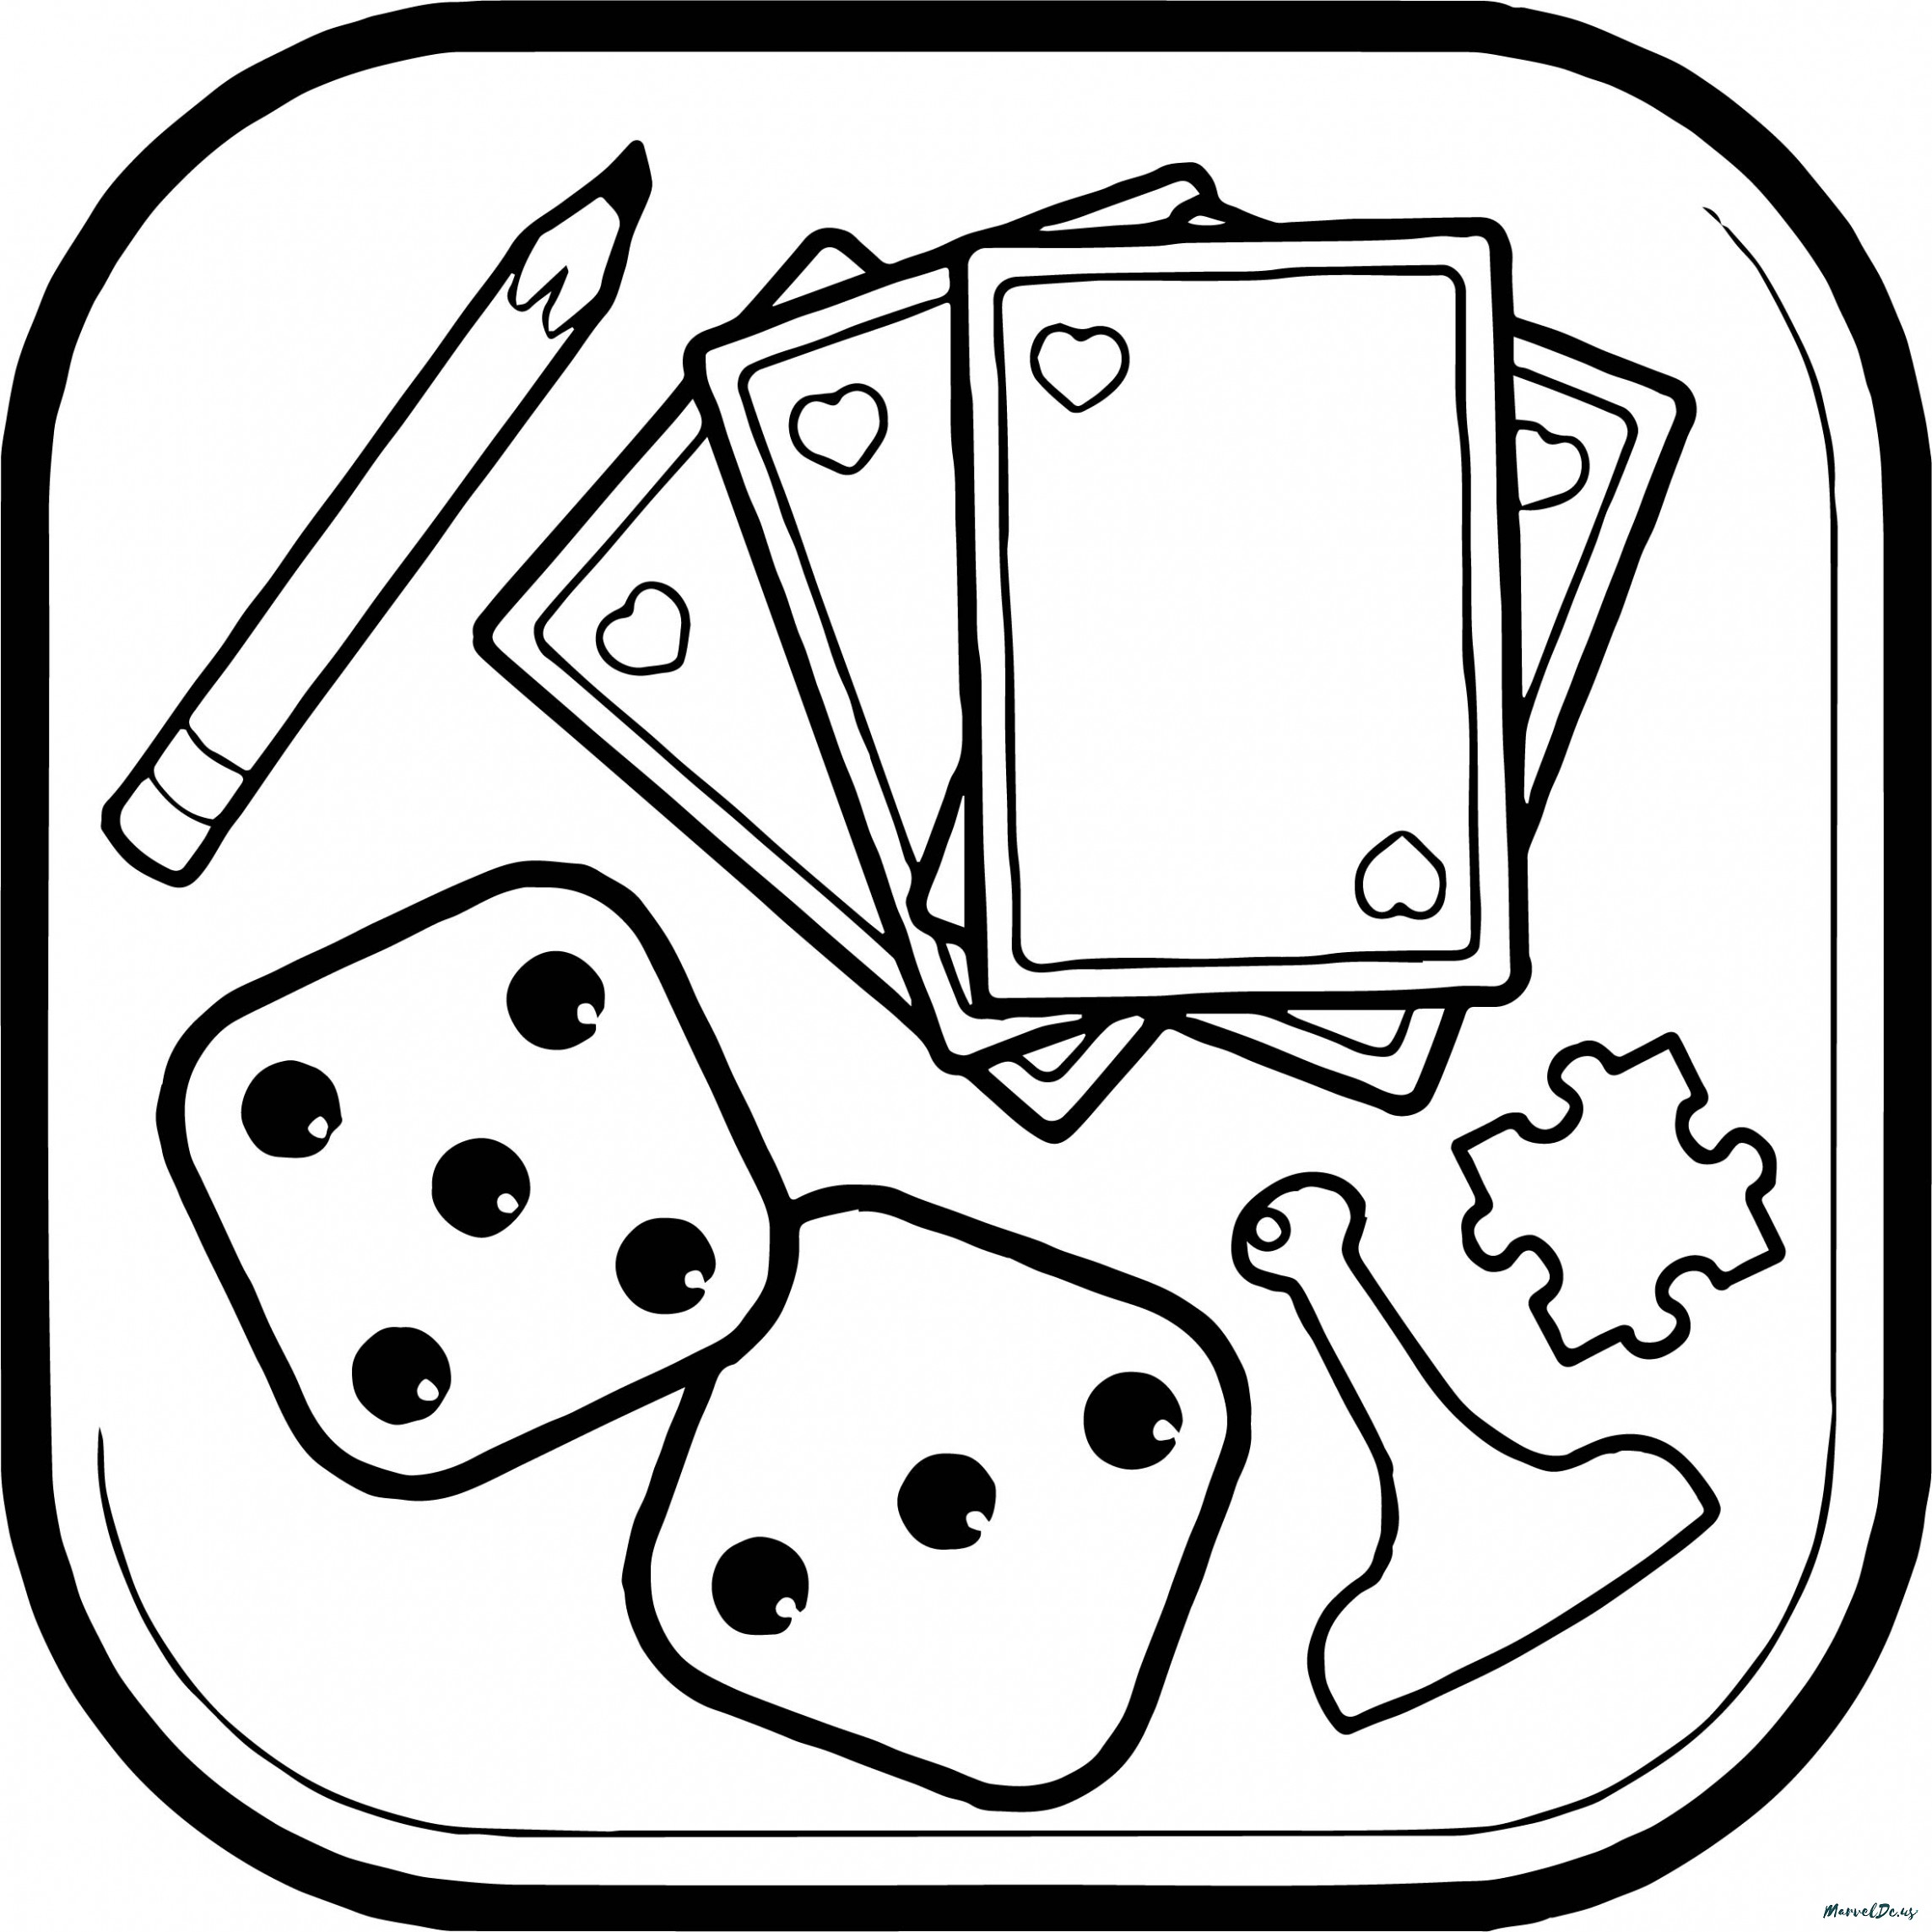 Board Game Coloring Pages At Getdrawings